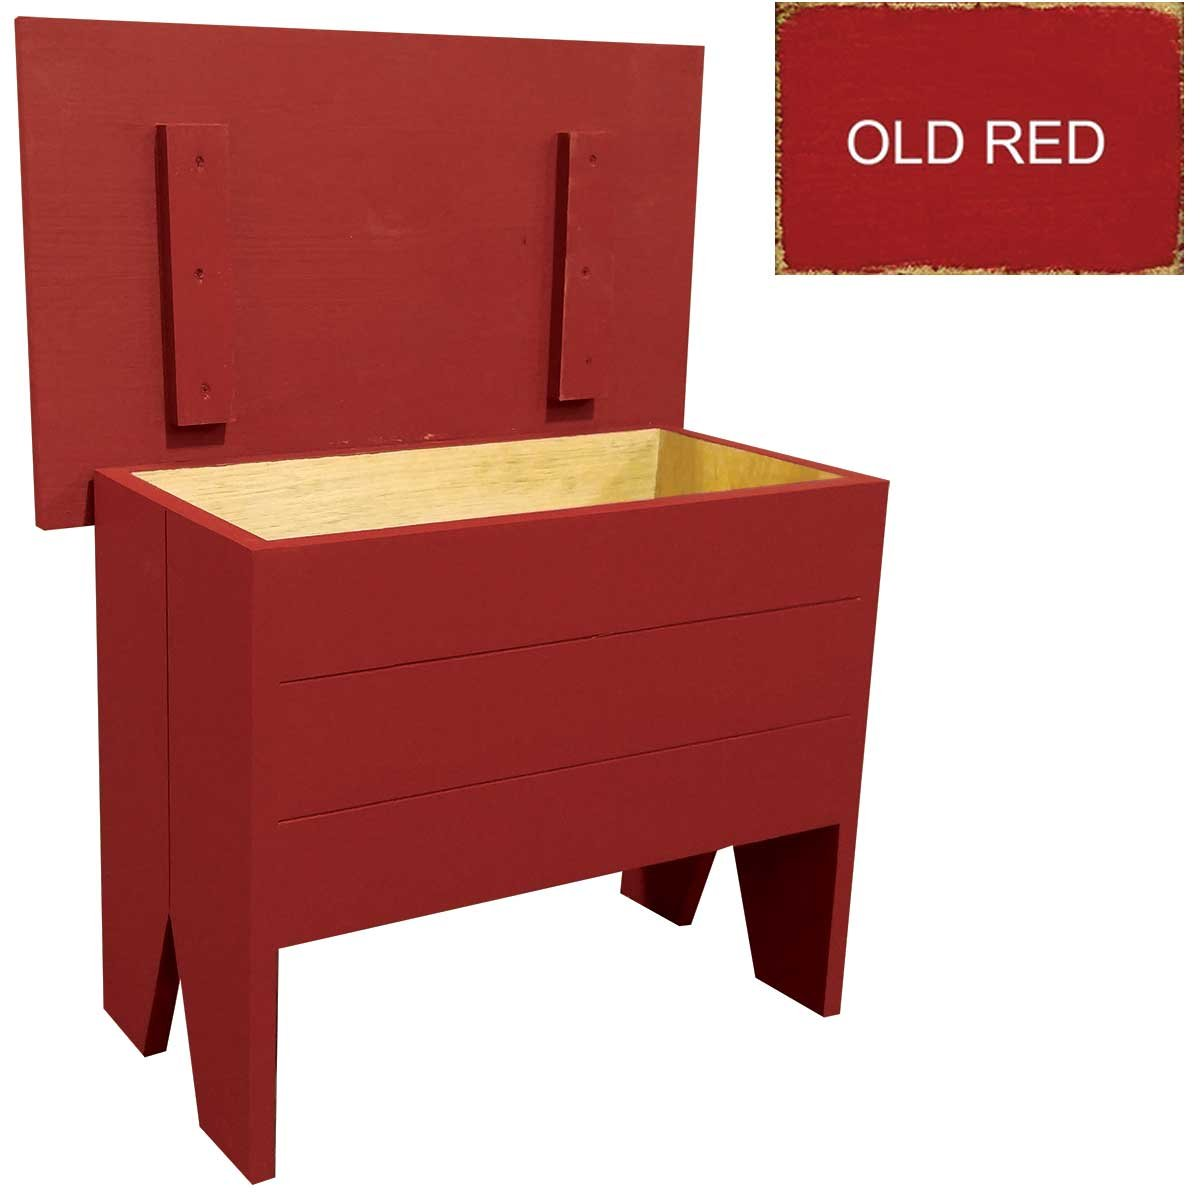 Sawdust City Storage Bench 2' long (Old Red)